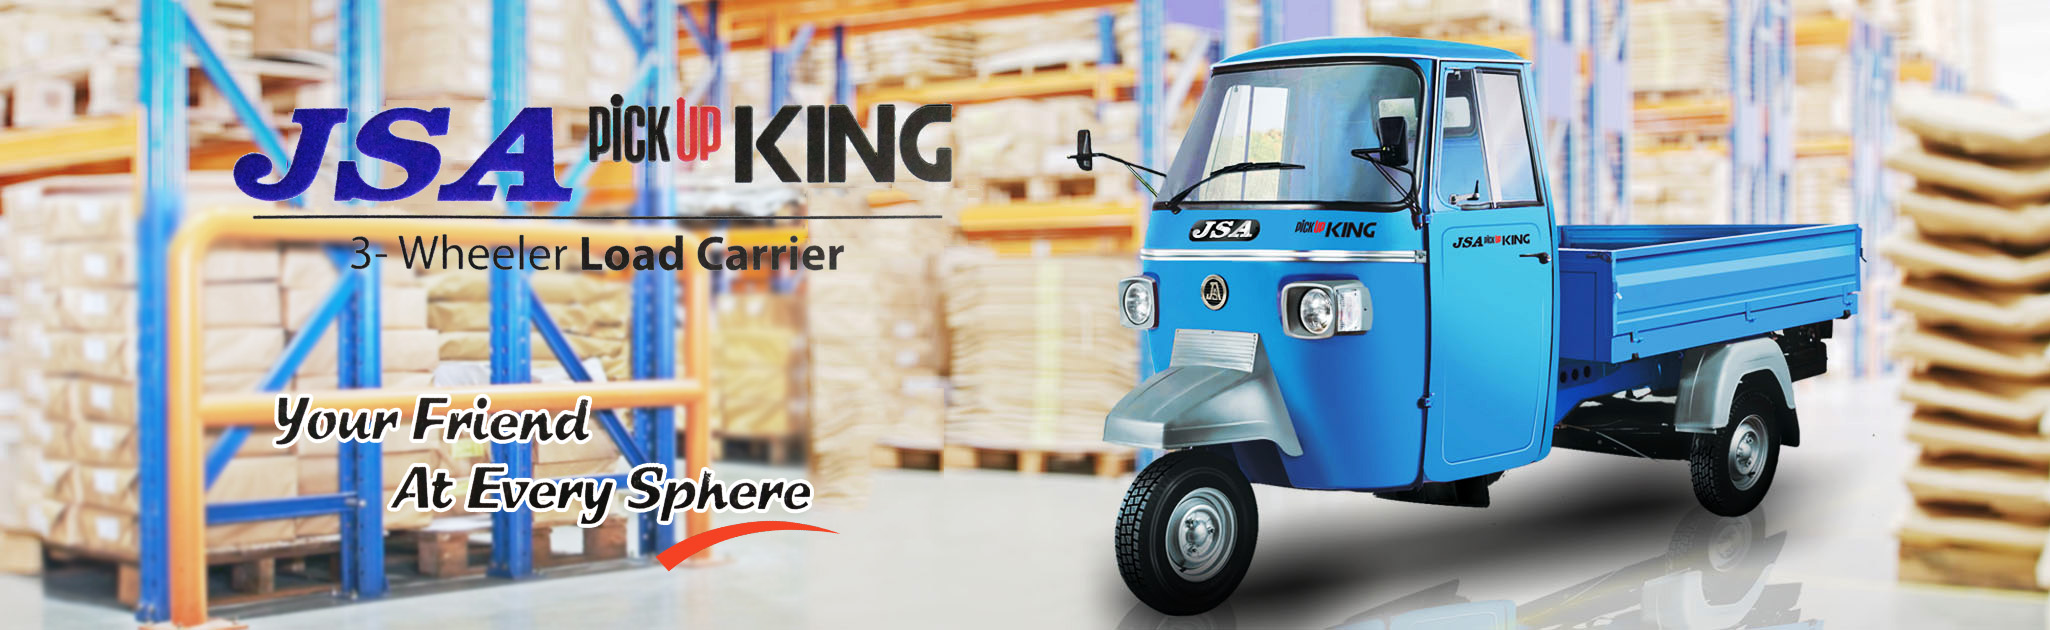 J.S. Auto Pvt. Ltd. - Manufacturer of Three Wheeler Passenger and Loader Vehicles